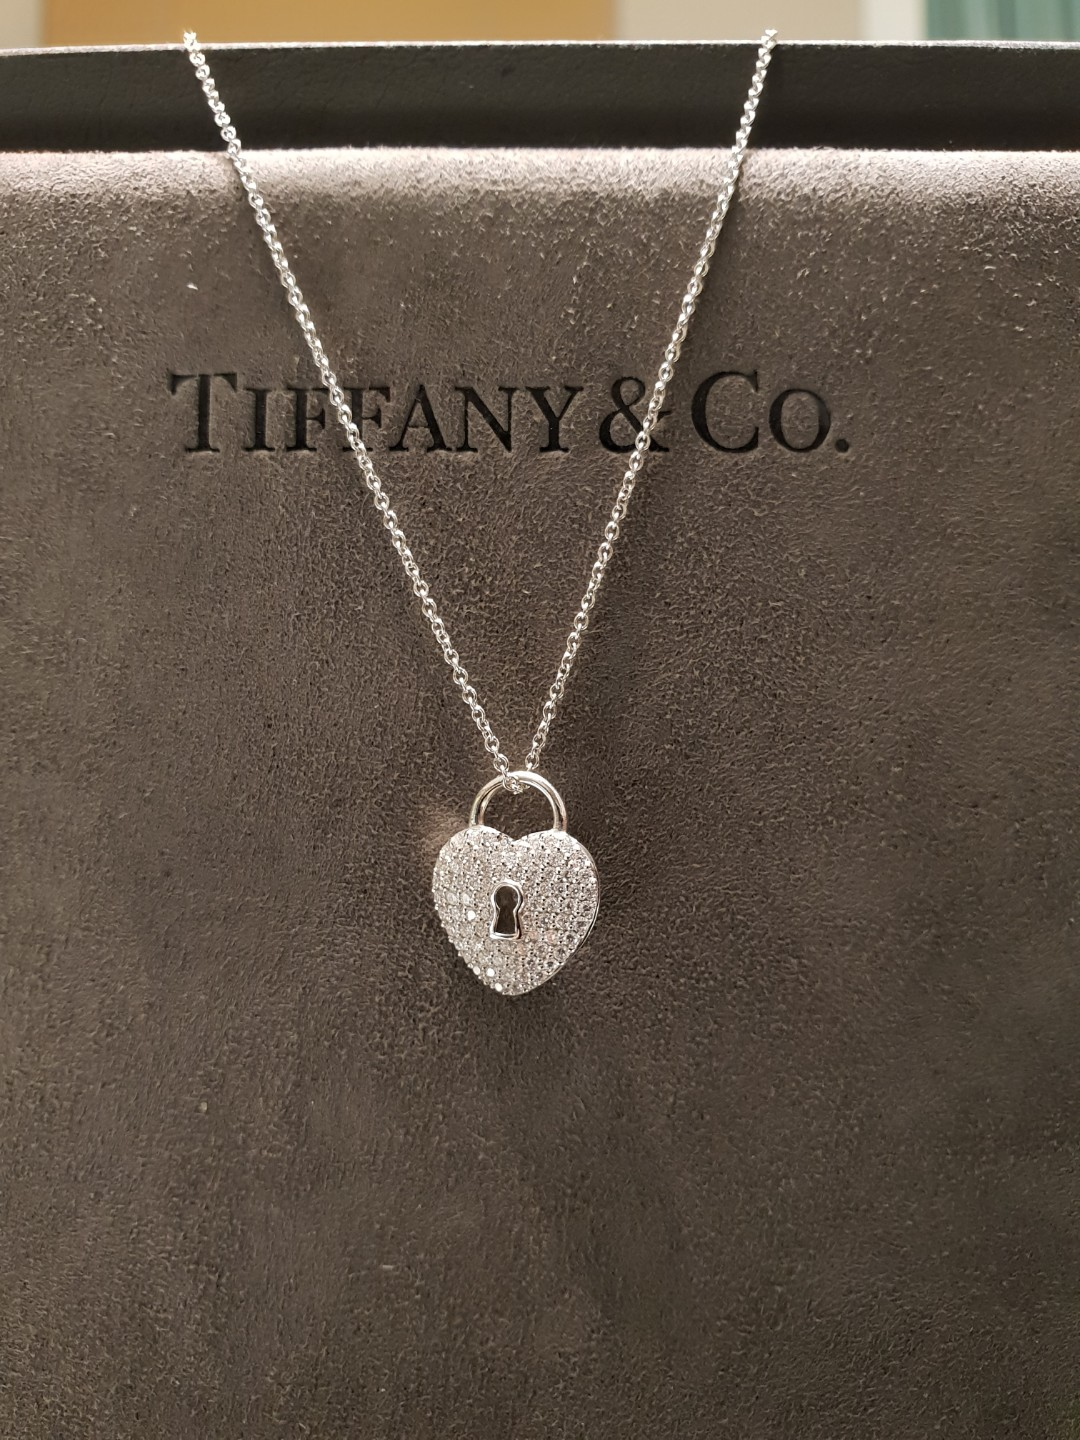 79592be16 Tiffany & Co Platinum Diamond Heart necklace, Women's Fashion ...